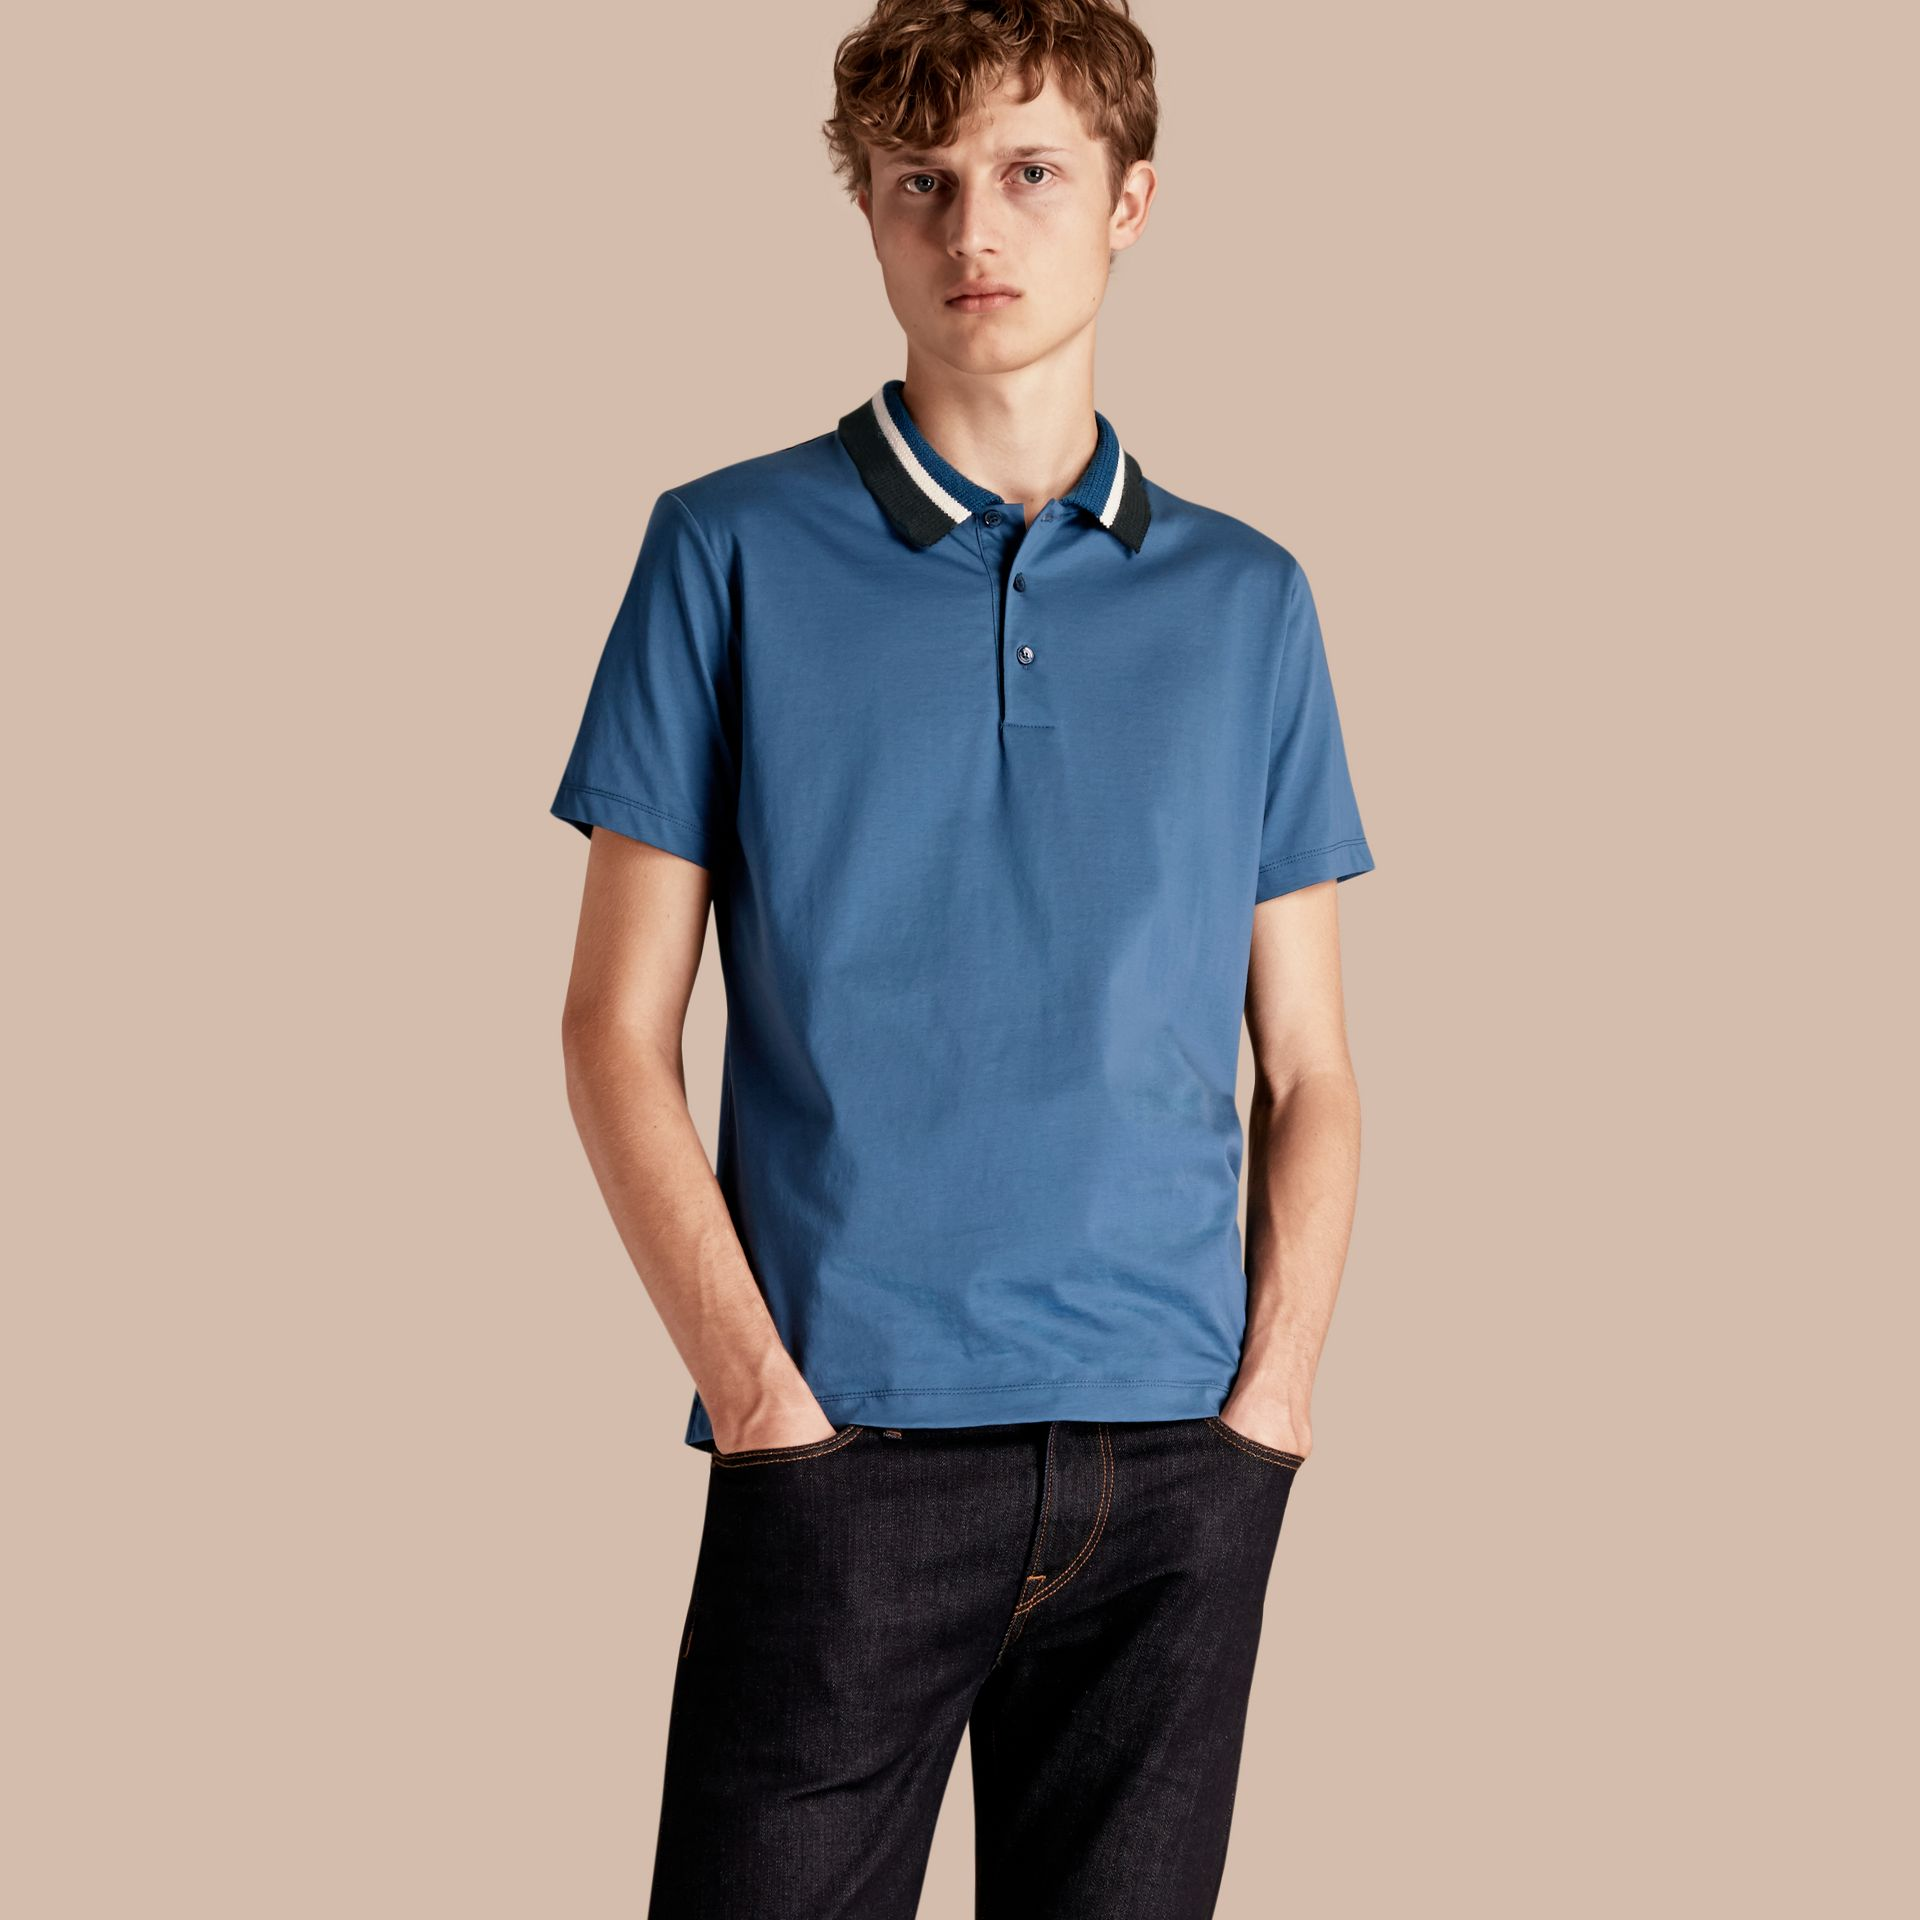 Mineral blue Cotton Polo Shirt with Knitted Collar Mineral Blue - gallery image 1